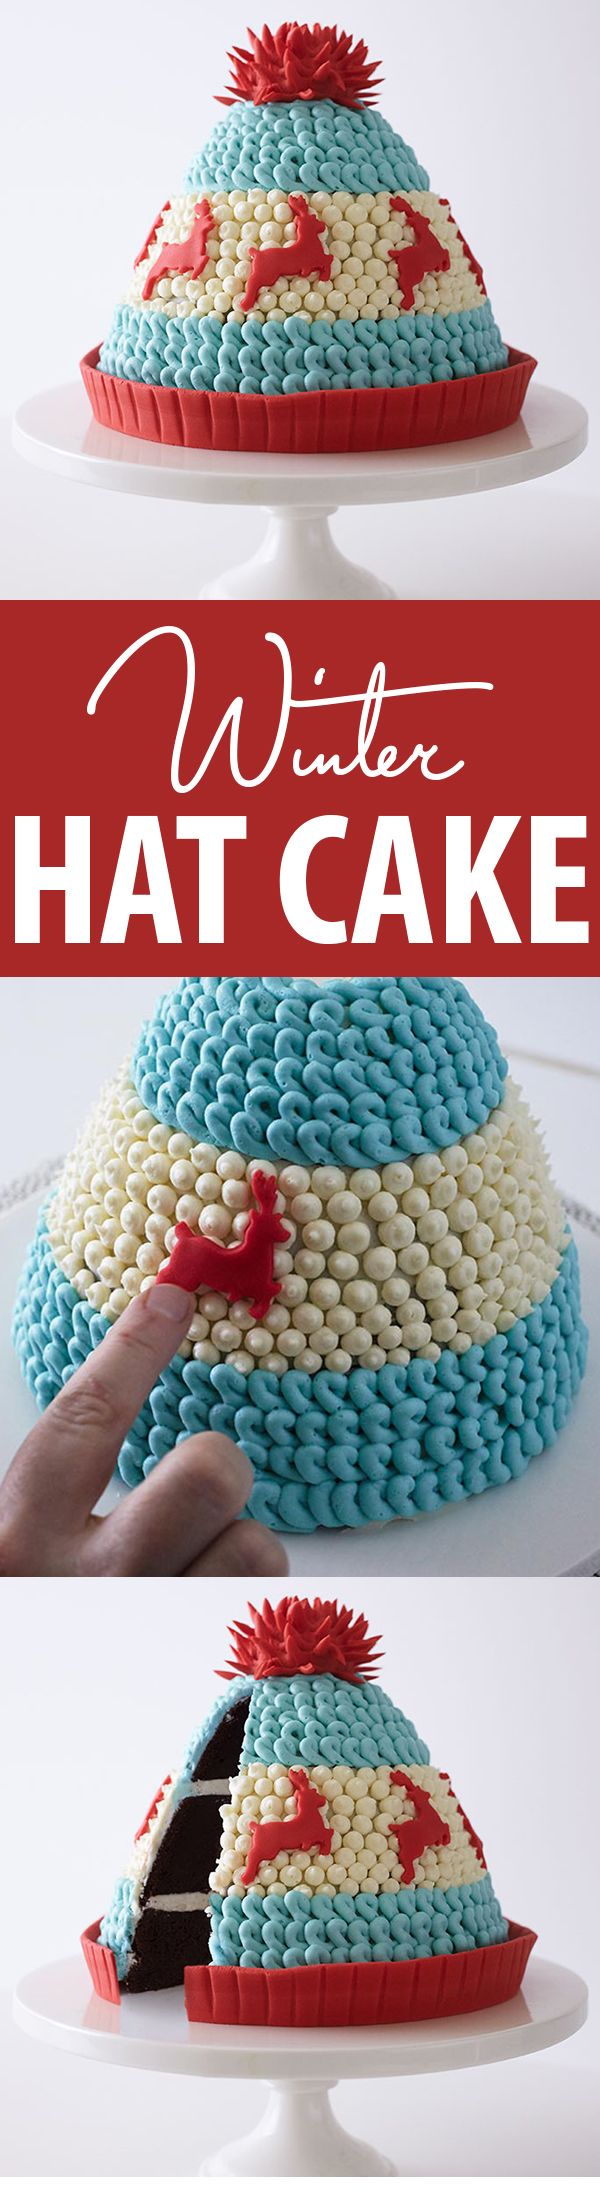 Knitted Winter Hat Cake - adorable Christmas dessert you can make at home | Cakegirls for TheCakeBlog.com